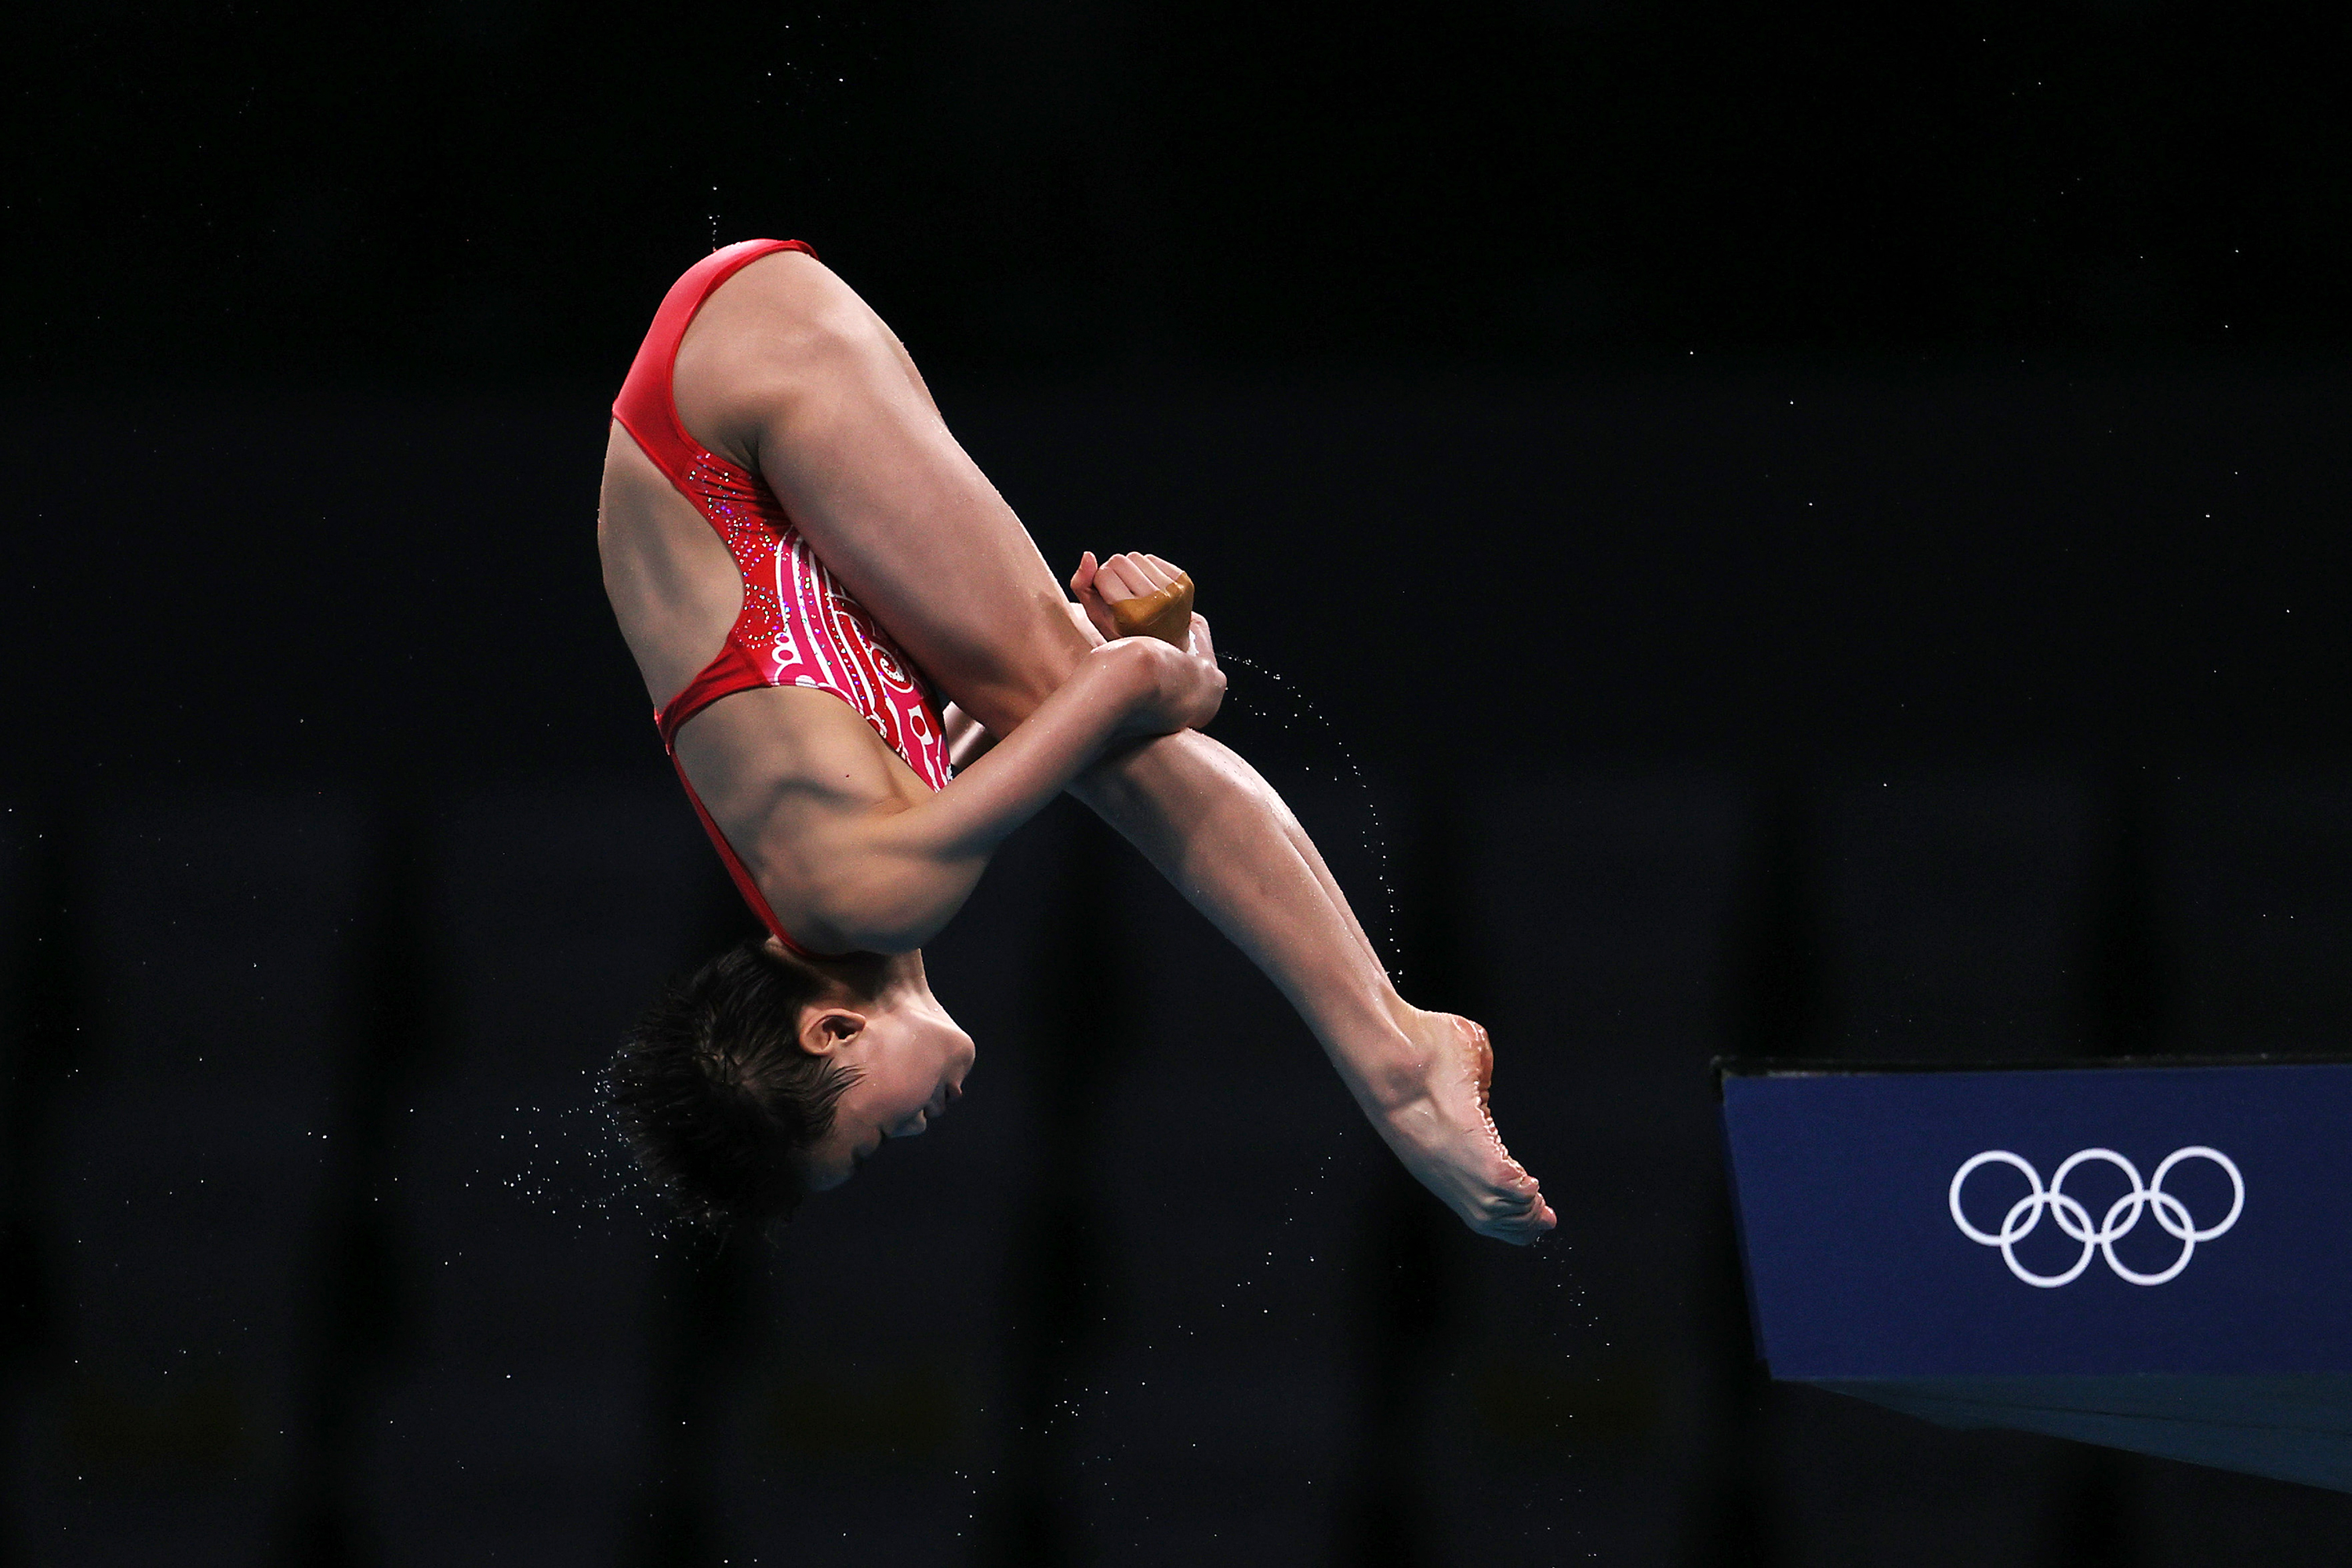 China's Quan Hongchan competes in the women's 10 meter platform final on August 5.